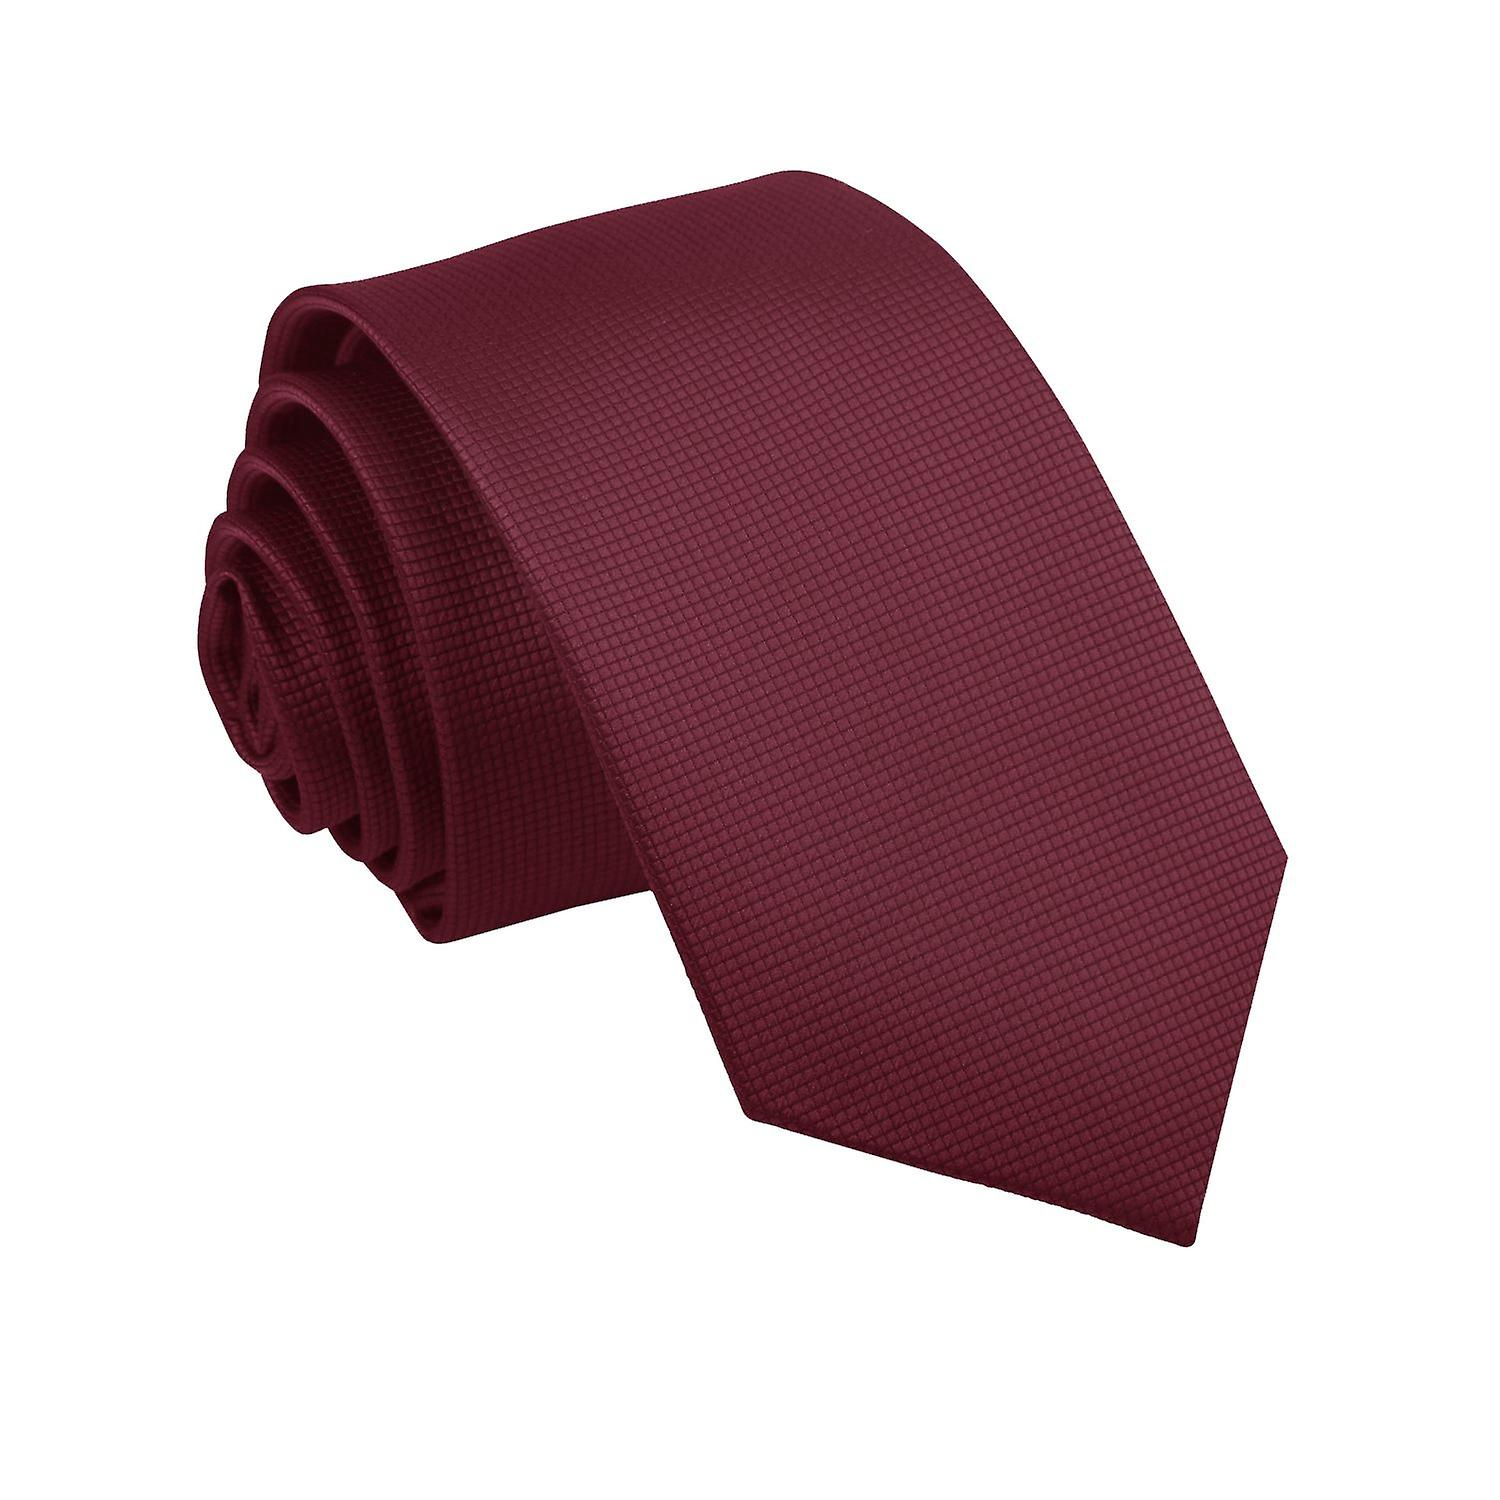 Solid Check Burgundy Slim Tie